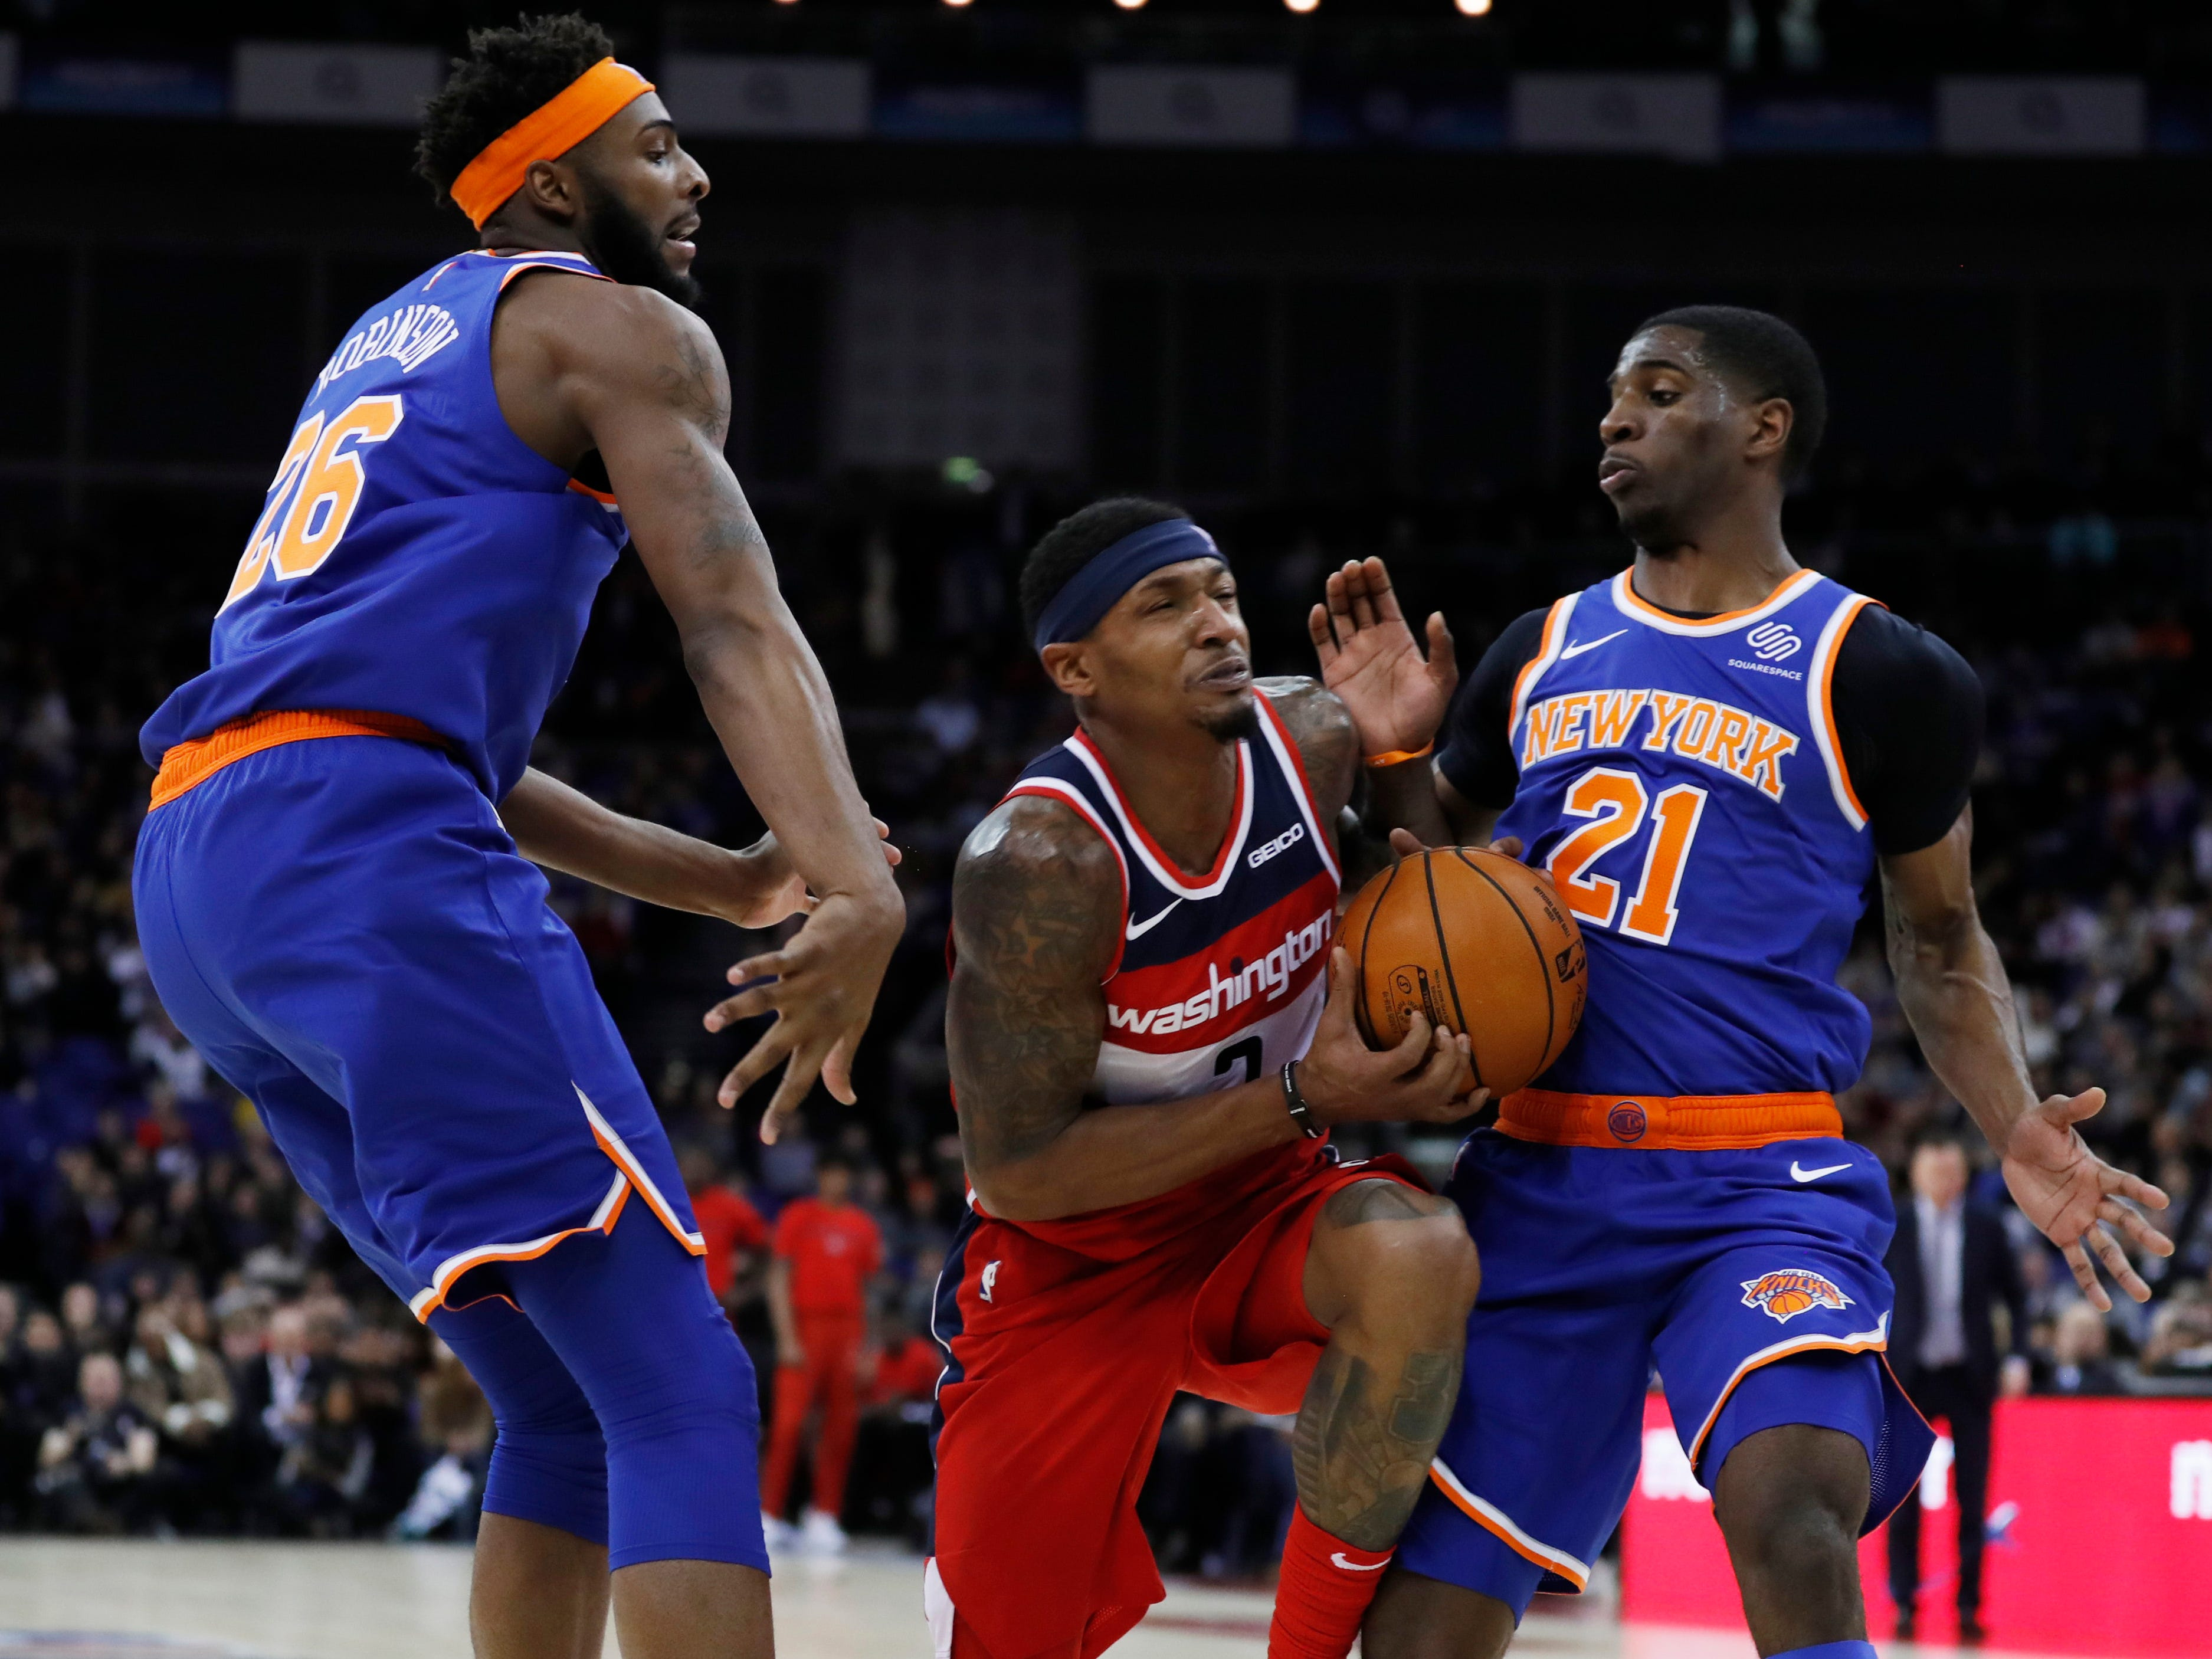 Washington Wizards guard Bradley Beal (3),center, drives to the basket flanked by New York Knicks center Mitchell Robinson (26), left, and his teammate guard Damyean Dotson (21), during an NBA basketball game between New York Knicks and Washington Wizards at the O2 Arena, in London, Thursday, Jan.17, 2019.